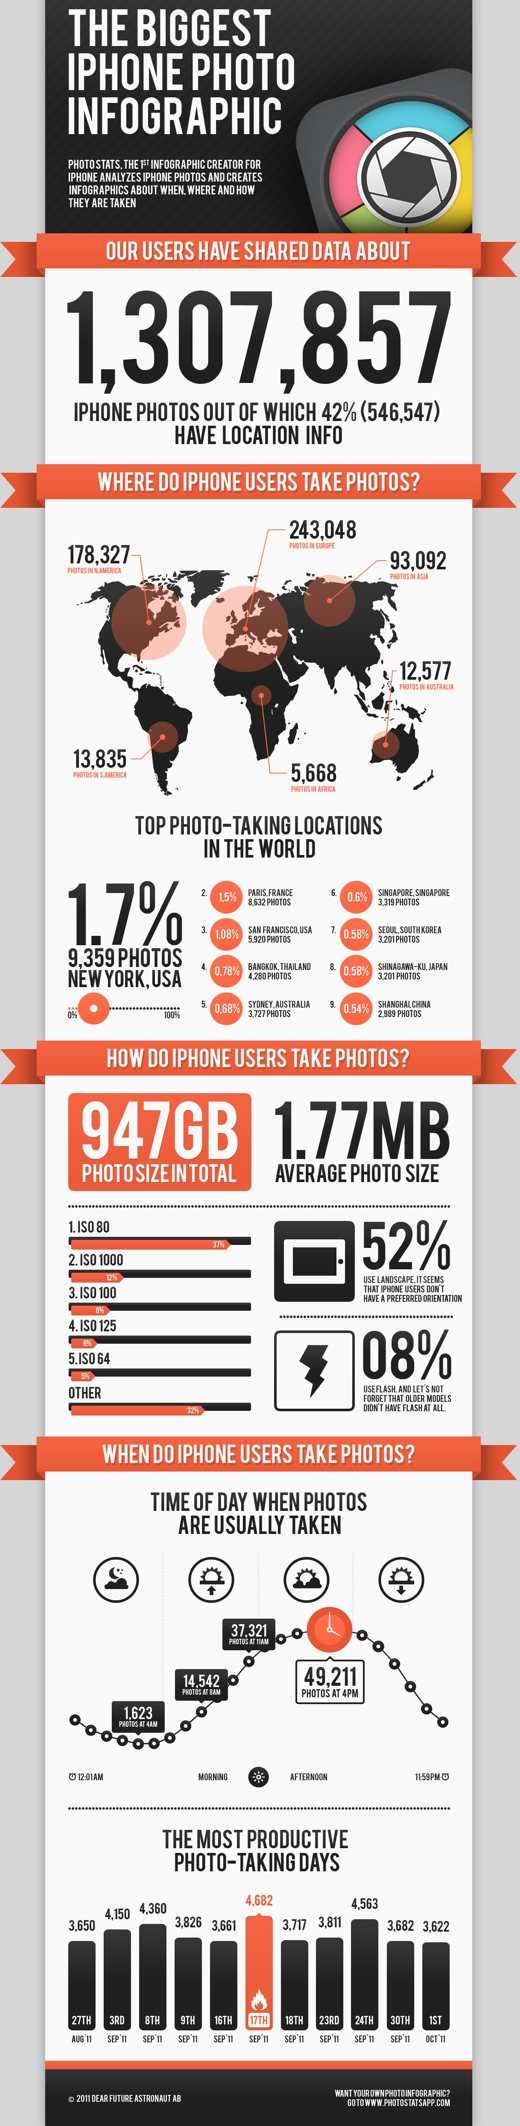 photos iPhone photos are usually taken at 4pm, and other interesting stats [Infographic]